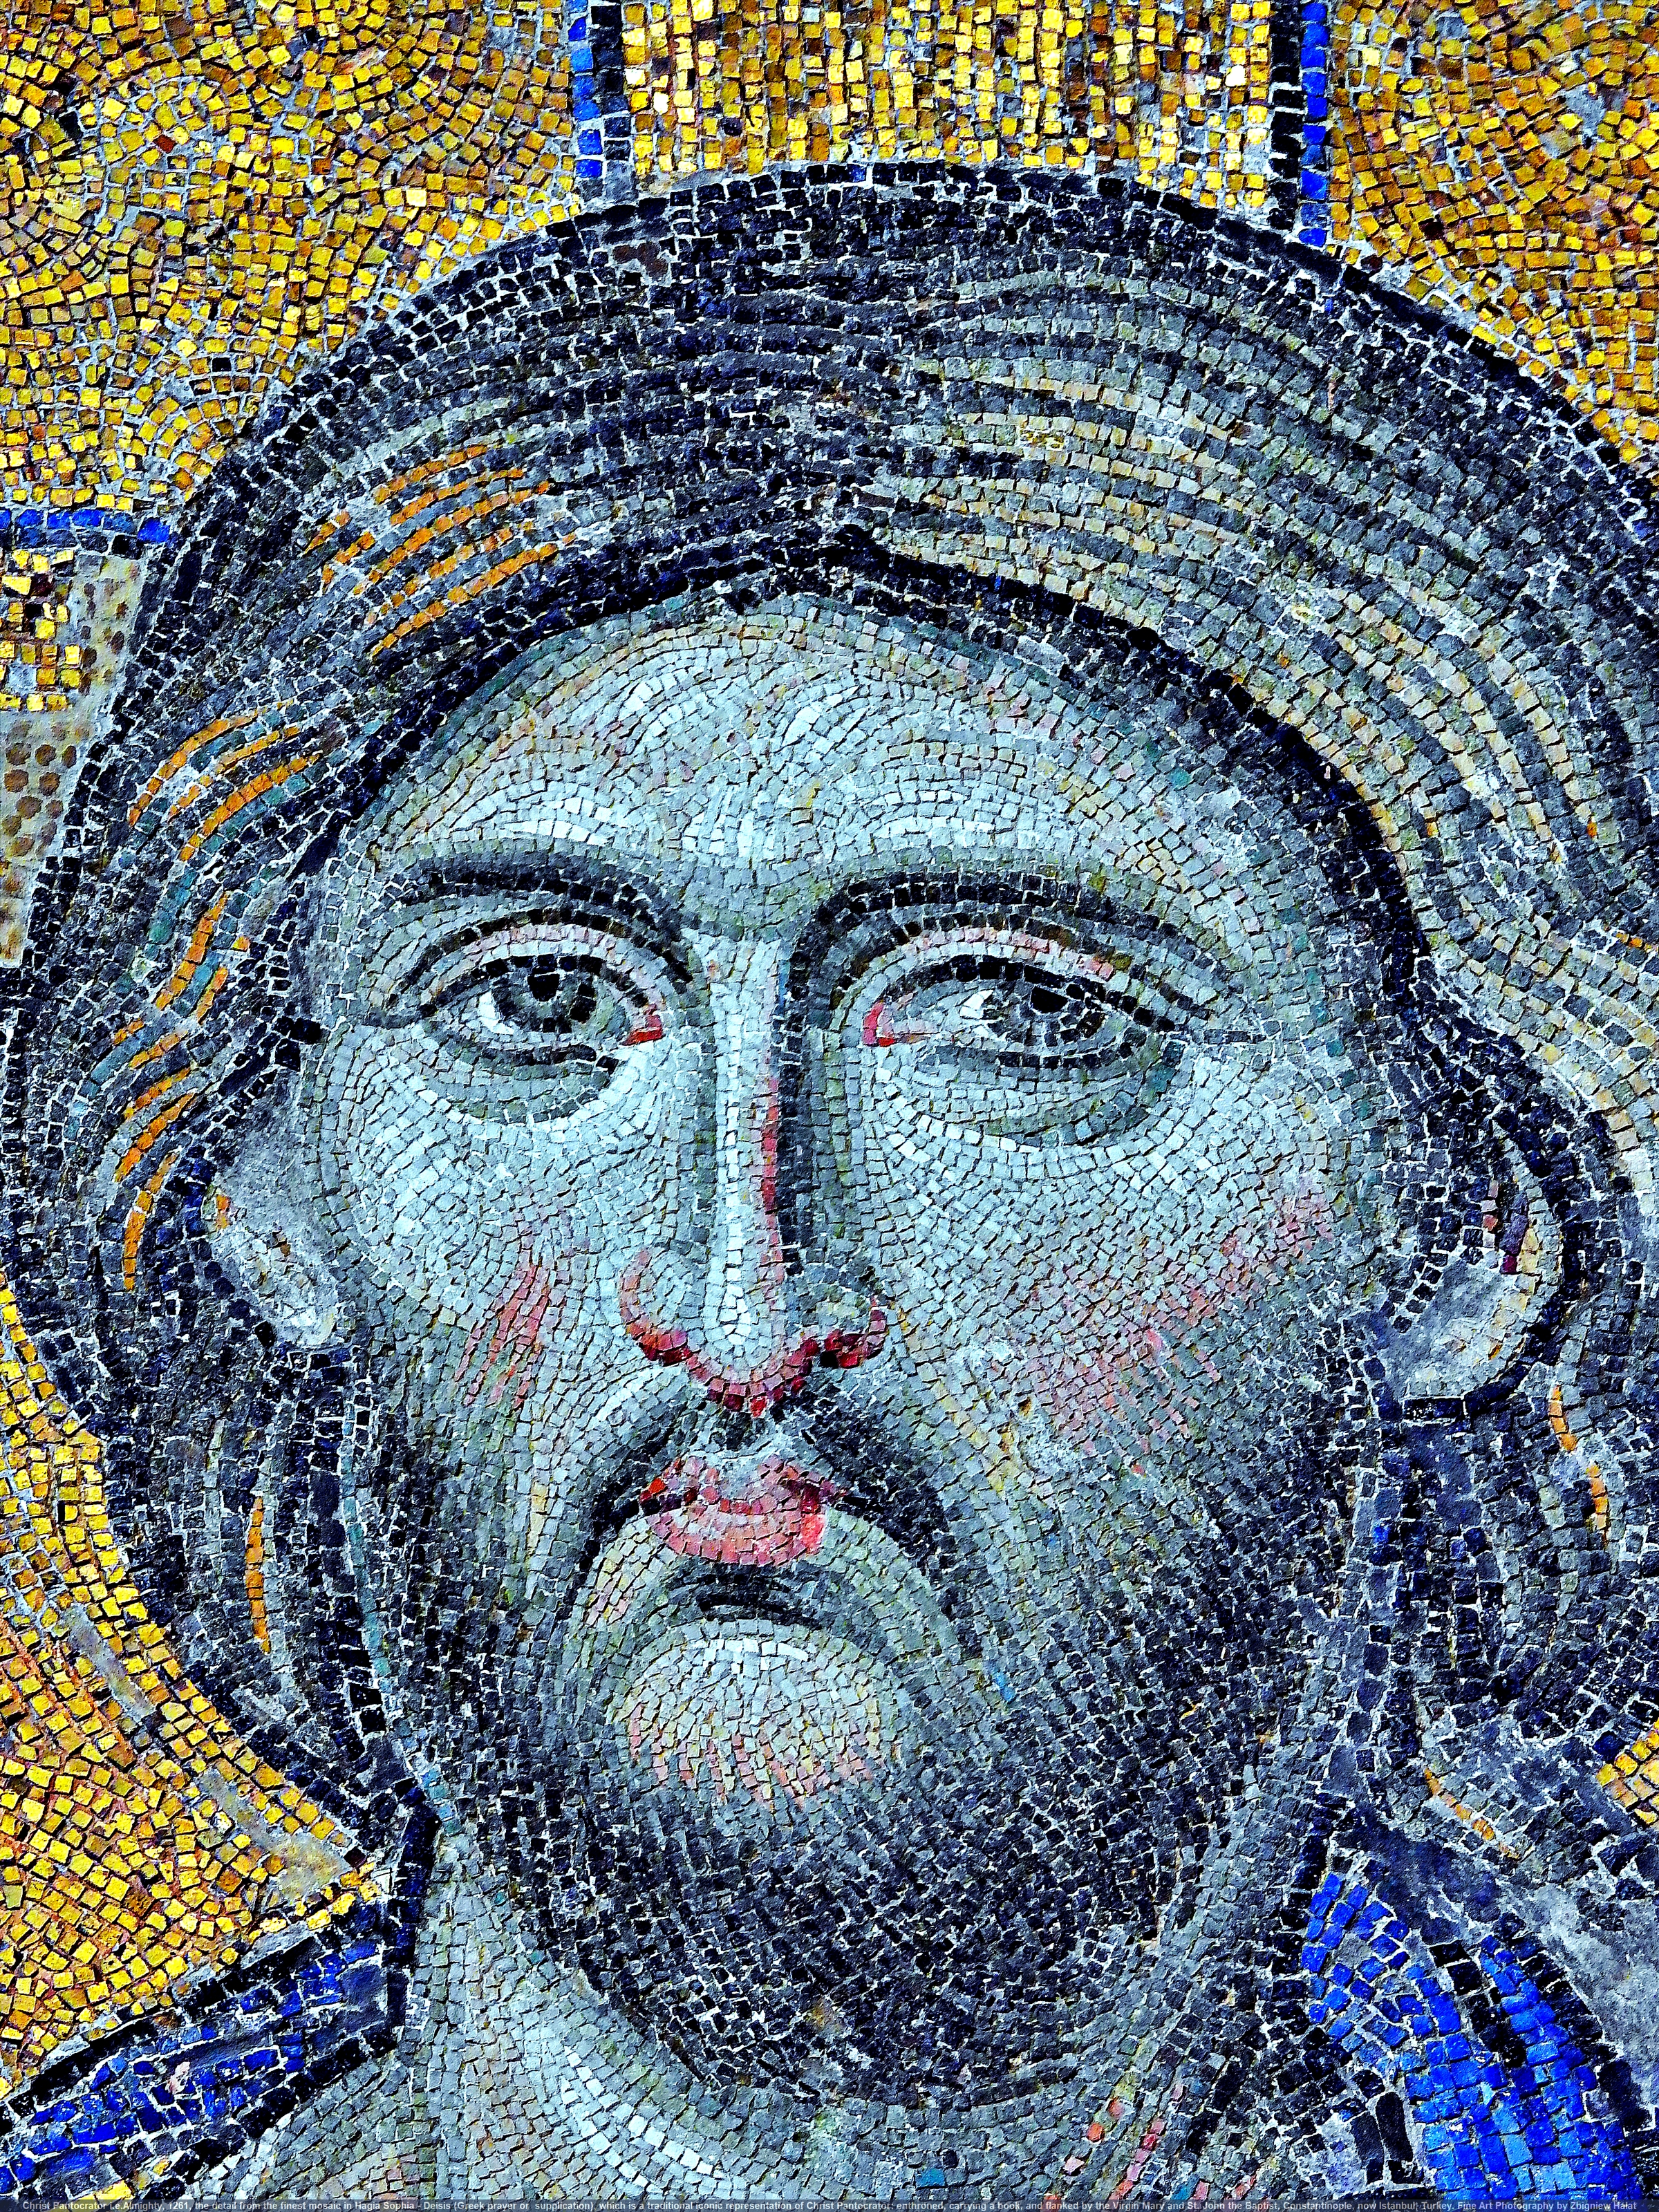 "Christ Pantocrator (Greek: Χριστὸς Παντοκράτωρ) Christ Almighty, 1261, the detail from the finest mosaic in Hagia Sophia - Deësis or Deisis (Greek: δέησις, ""prayer"" or ""supplication""), which is a traditional iconic representation of Christ Pantocrator: enthroned, carrying a book, and flanked by the Virgin Mary and St. John the Baptist, Constantinople, now Istanbul, Turkey. Fine Art Photography by Zbigniew Halat"